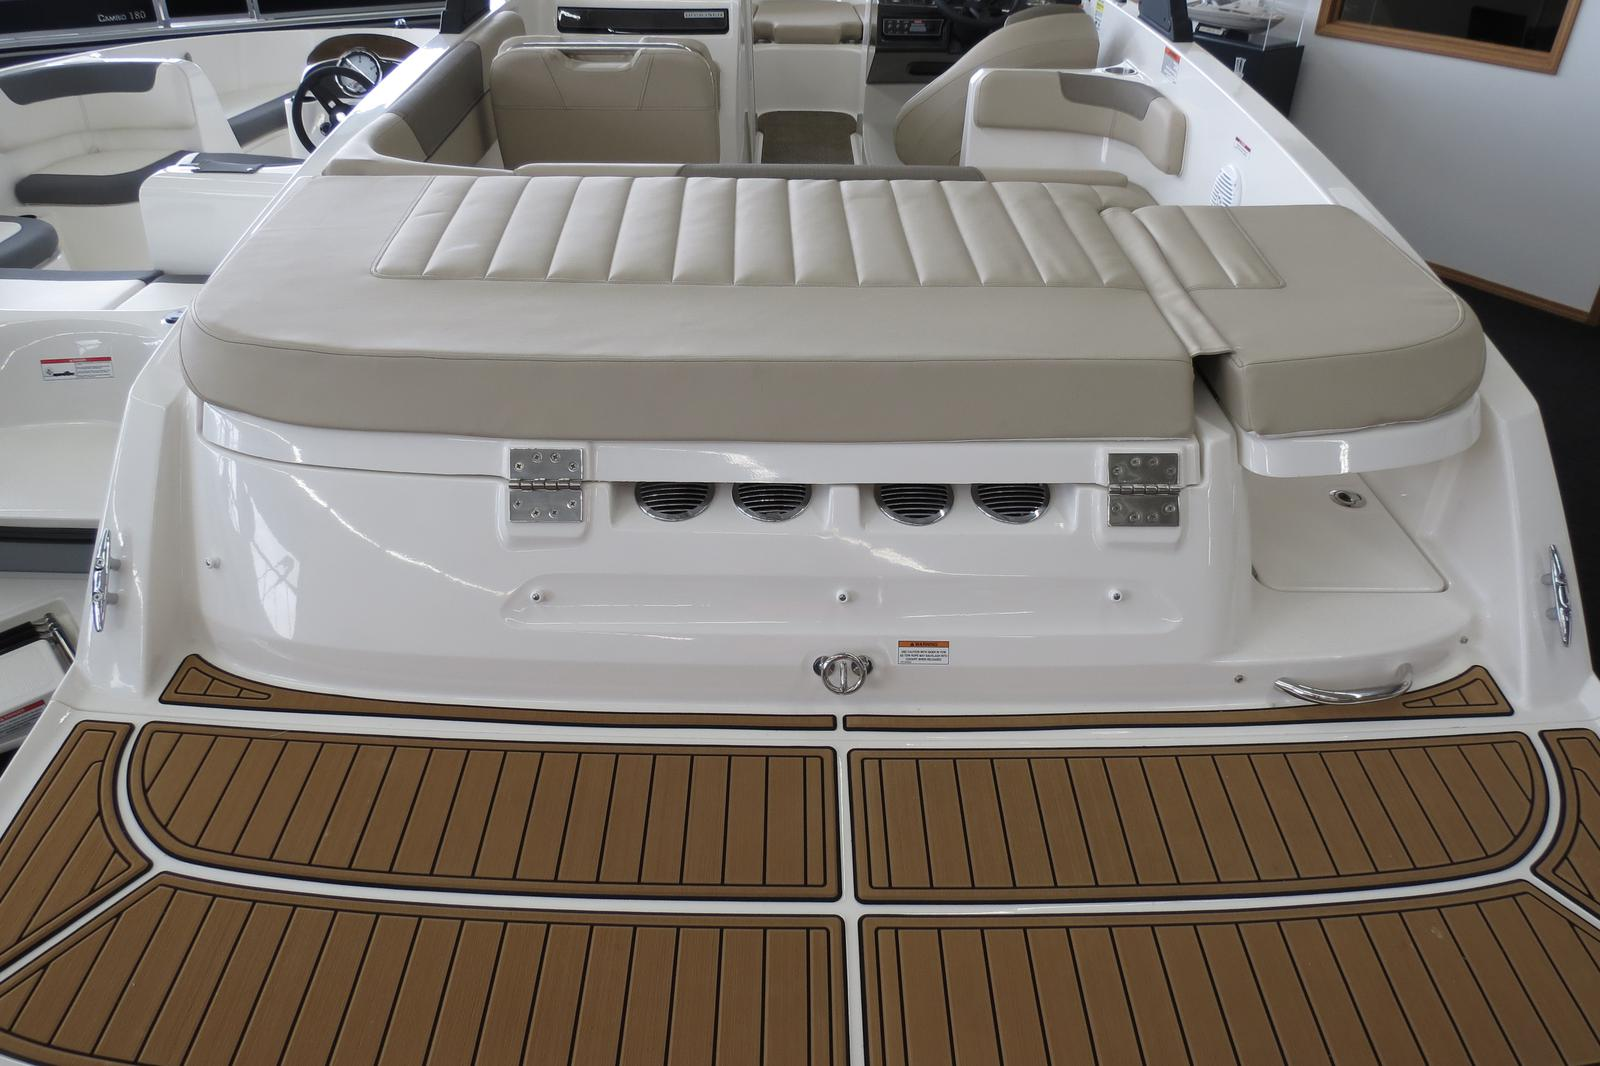 2019 Bayliner boat for sale, model of the boat is VR6 Bowrider & Image # 7 of 7